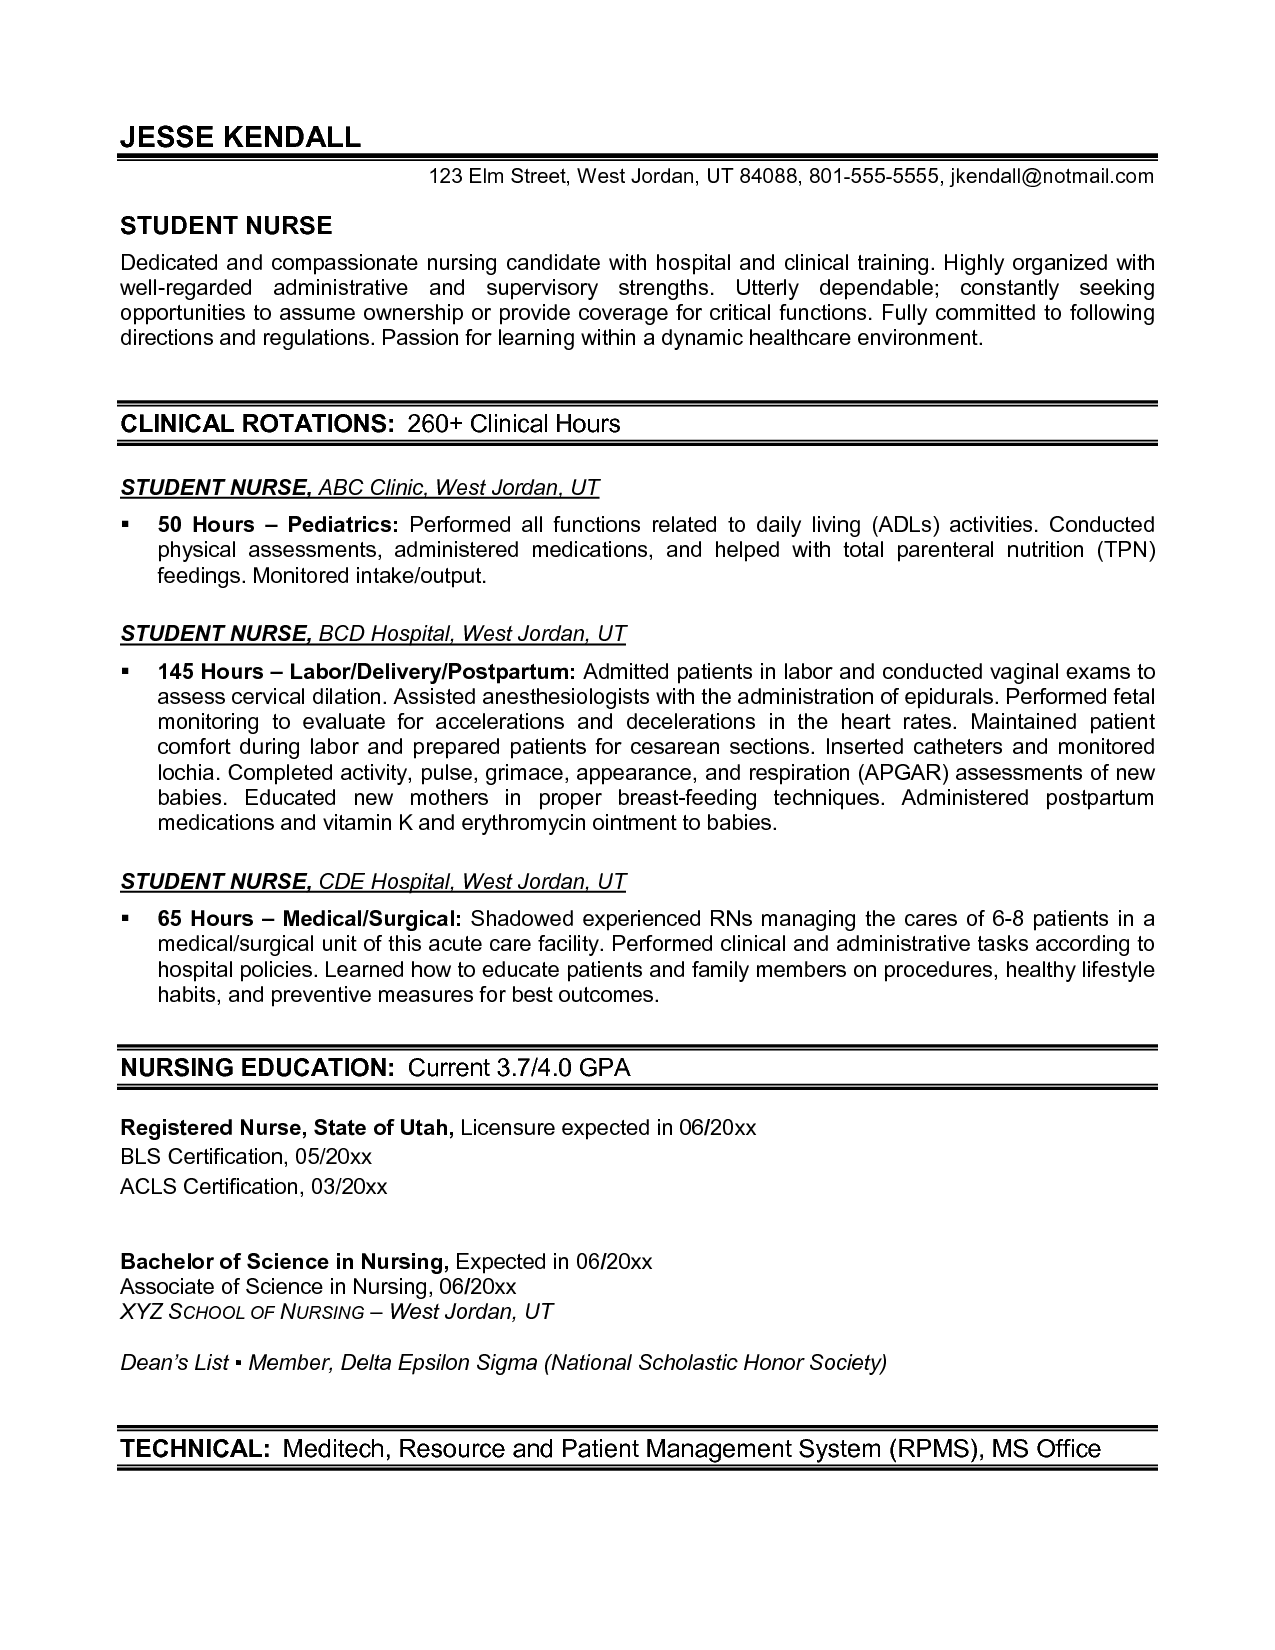 Nursing Resumes Examples Resume Template Nursing  Nursing  Pinterest  Nursing Resume